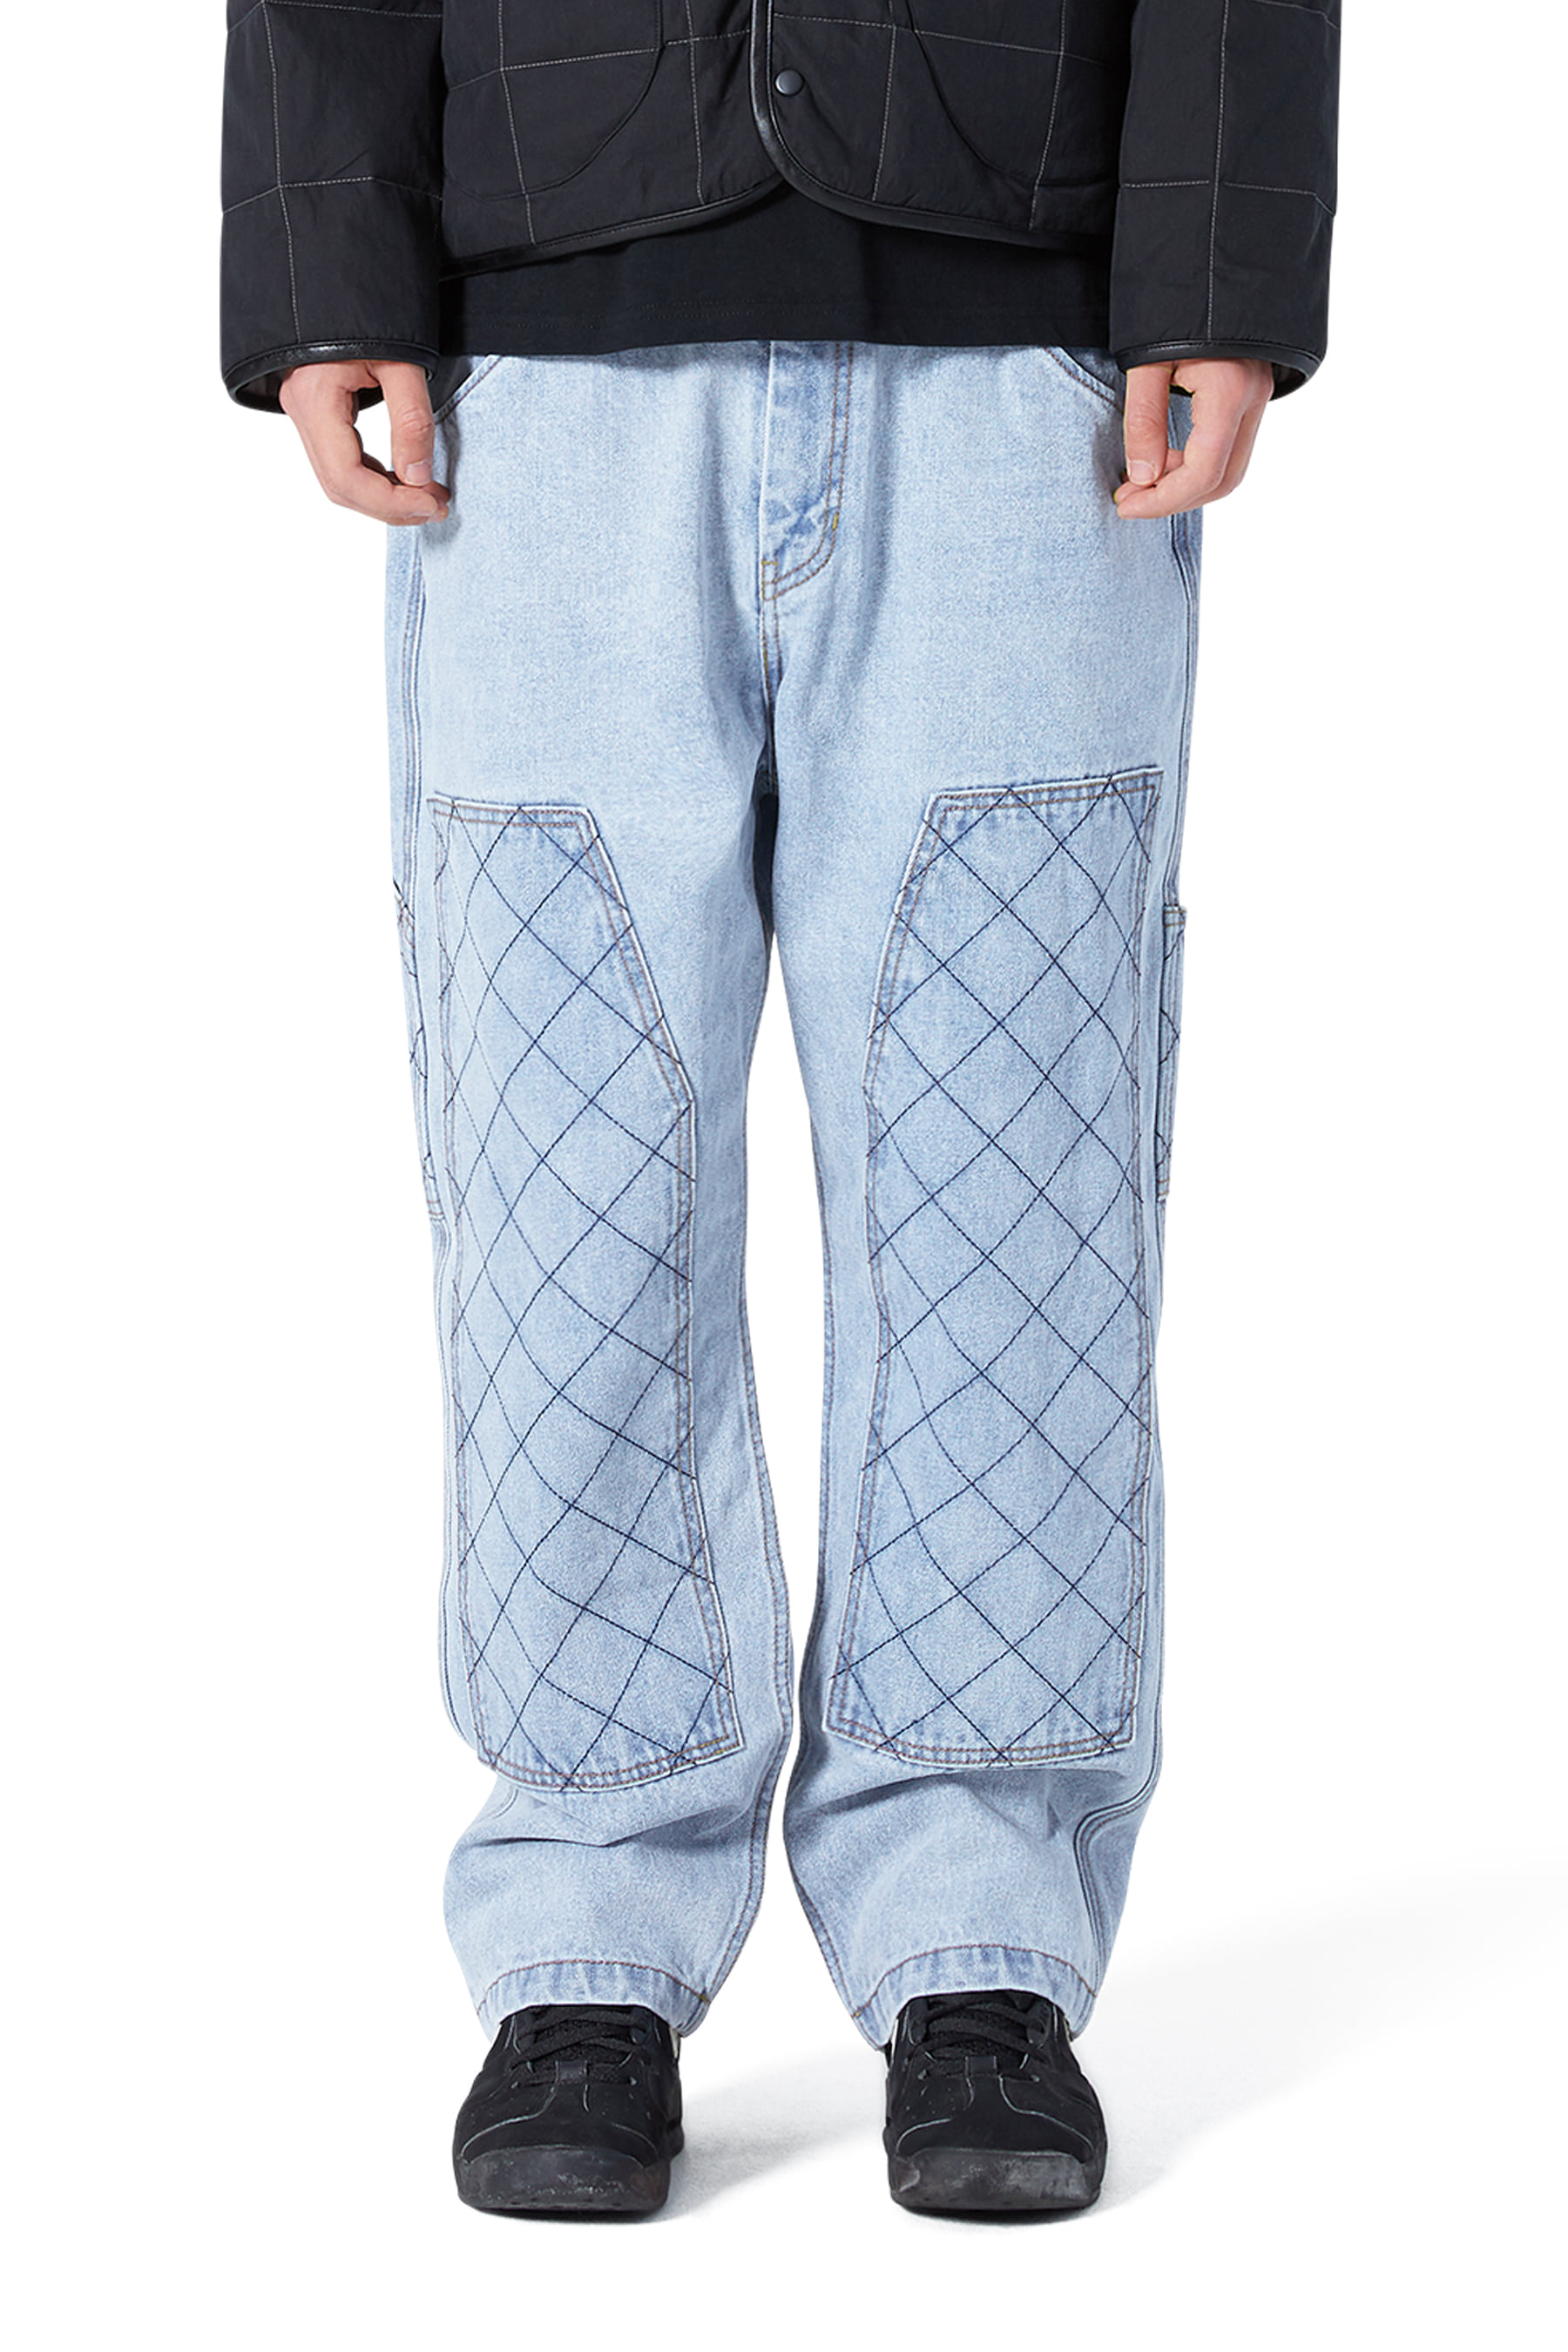 Net Denim Work Pants Light Blue